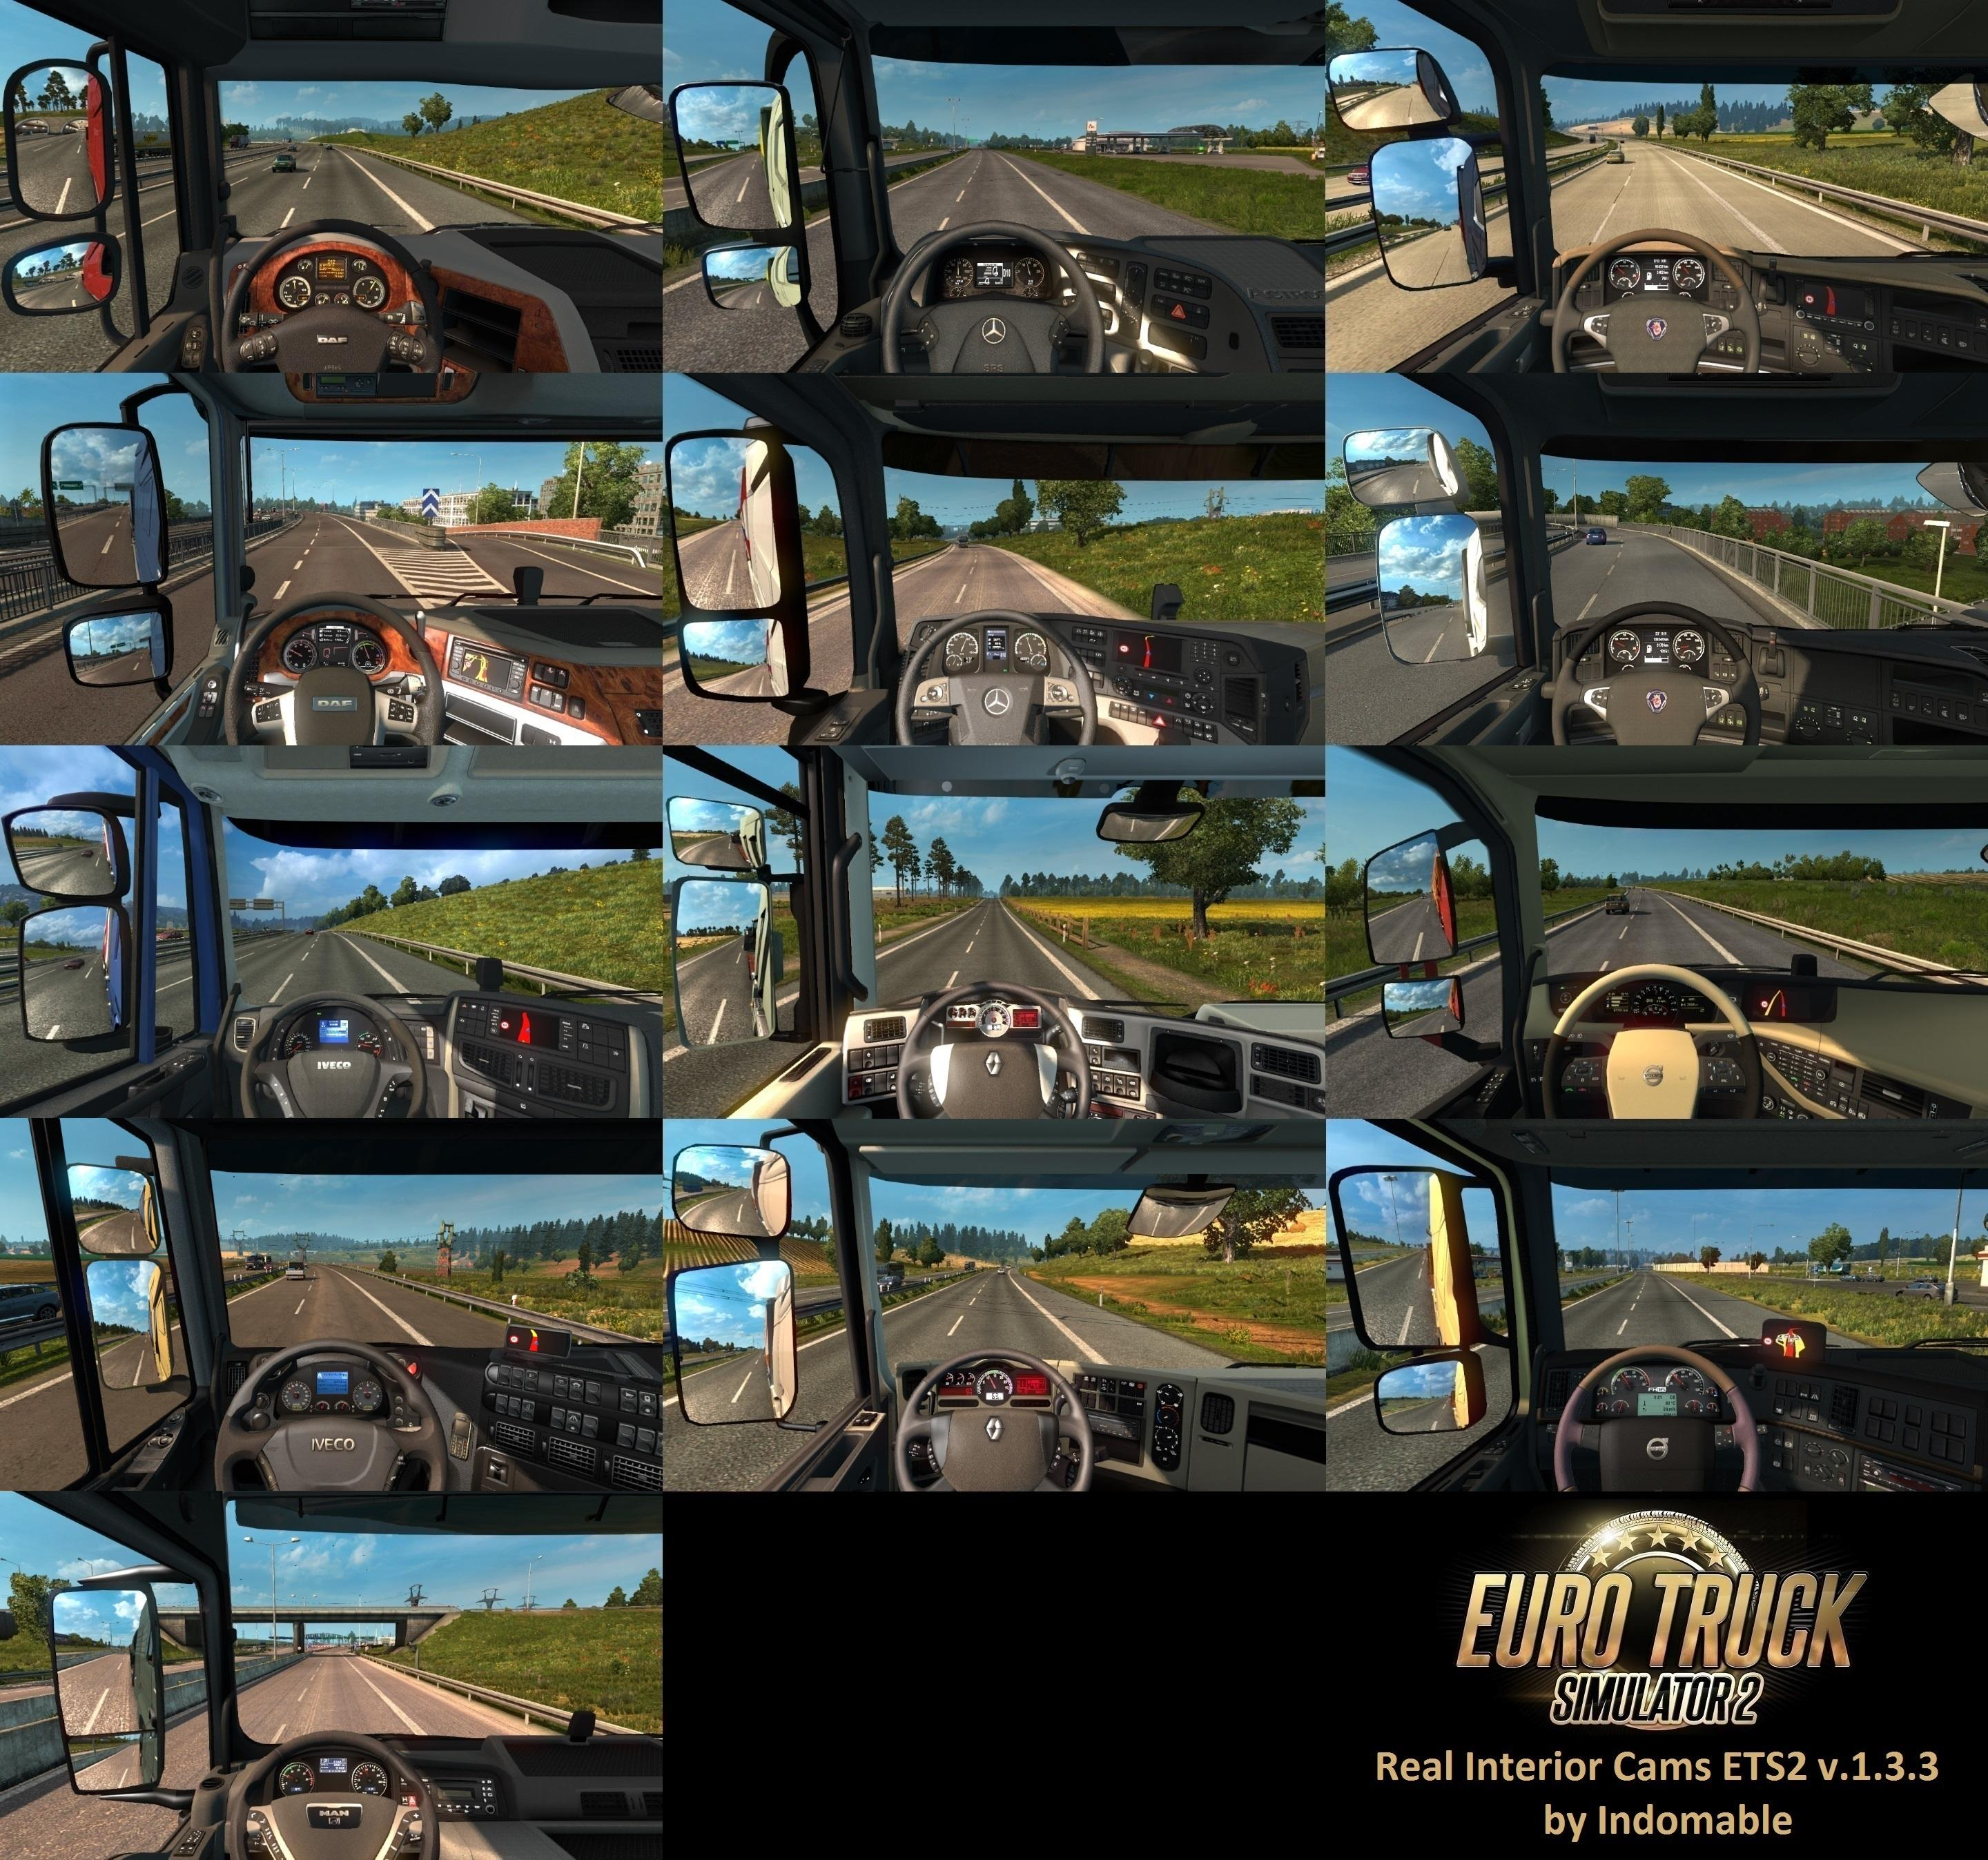 Real Interior Cams ETS2 v1.3.3 by Indomable